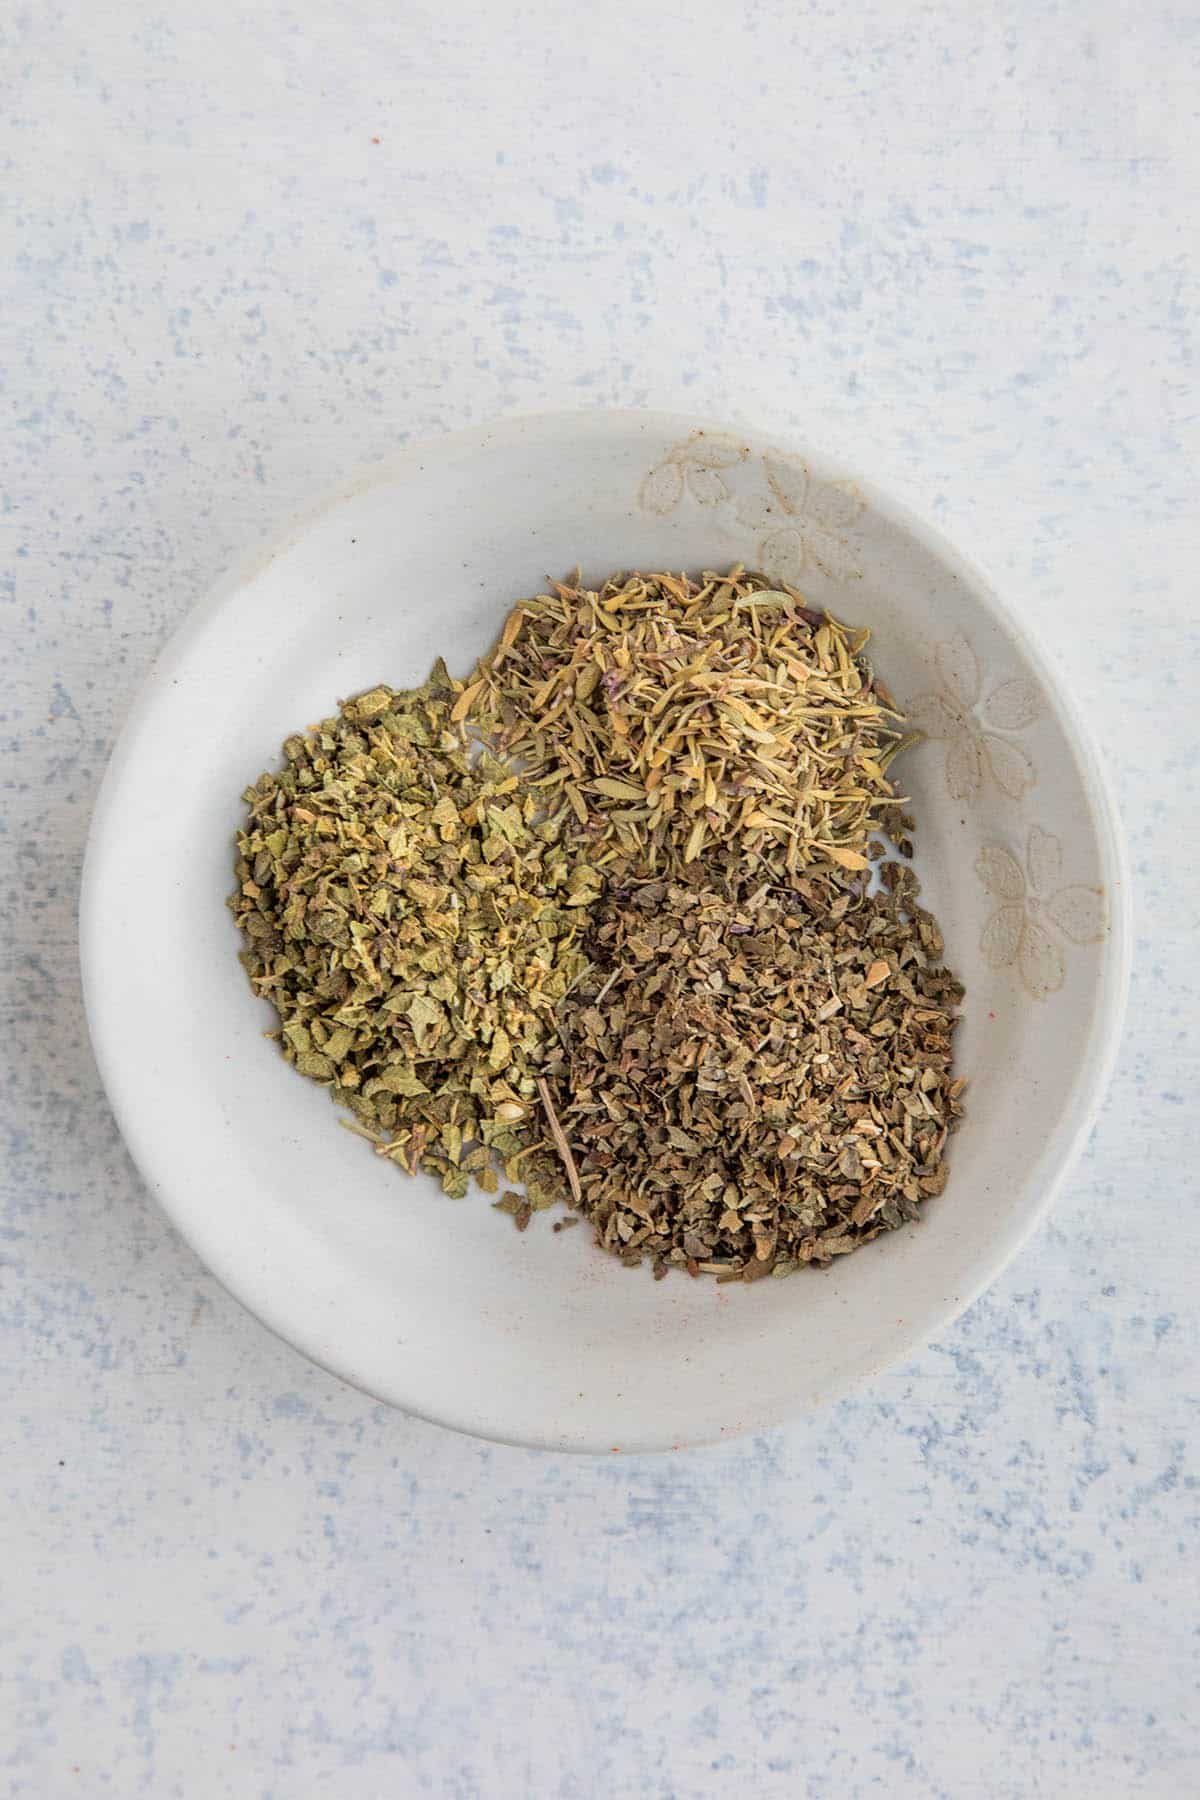 The herbs in my Homemade Blackening Seasoning recipe